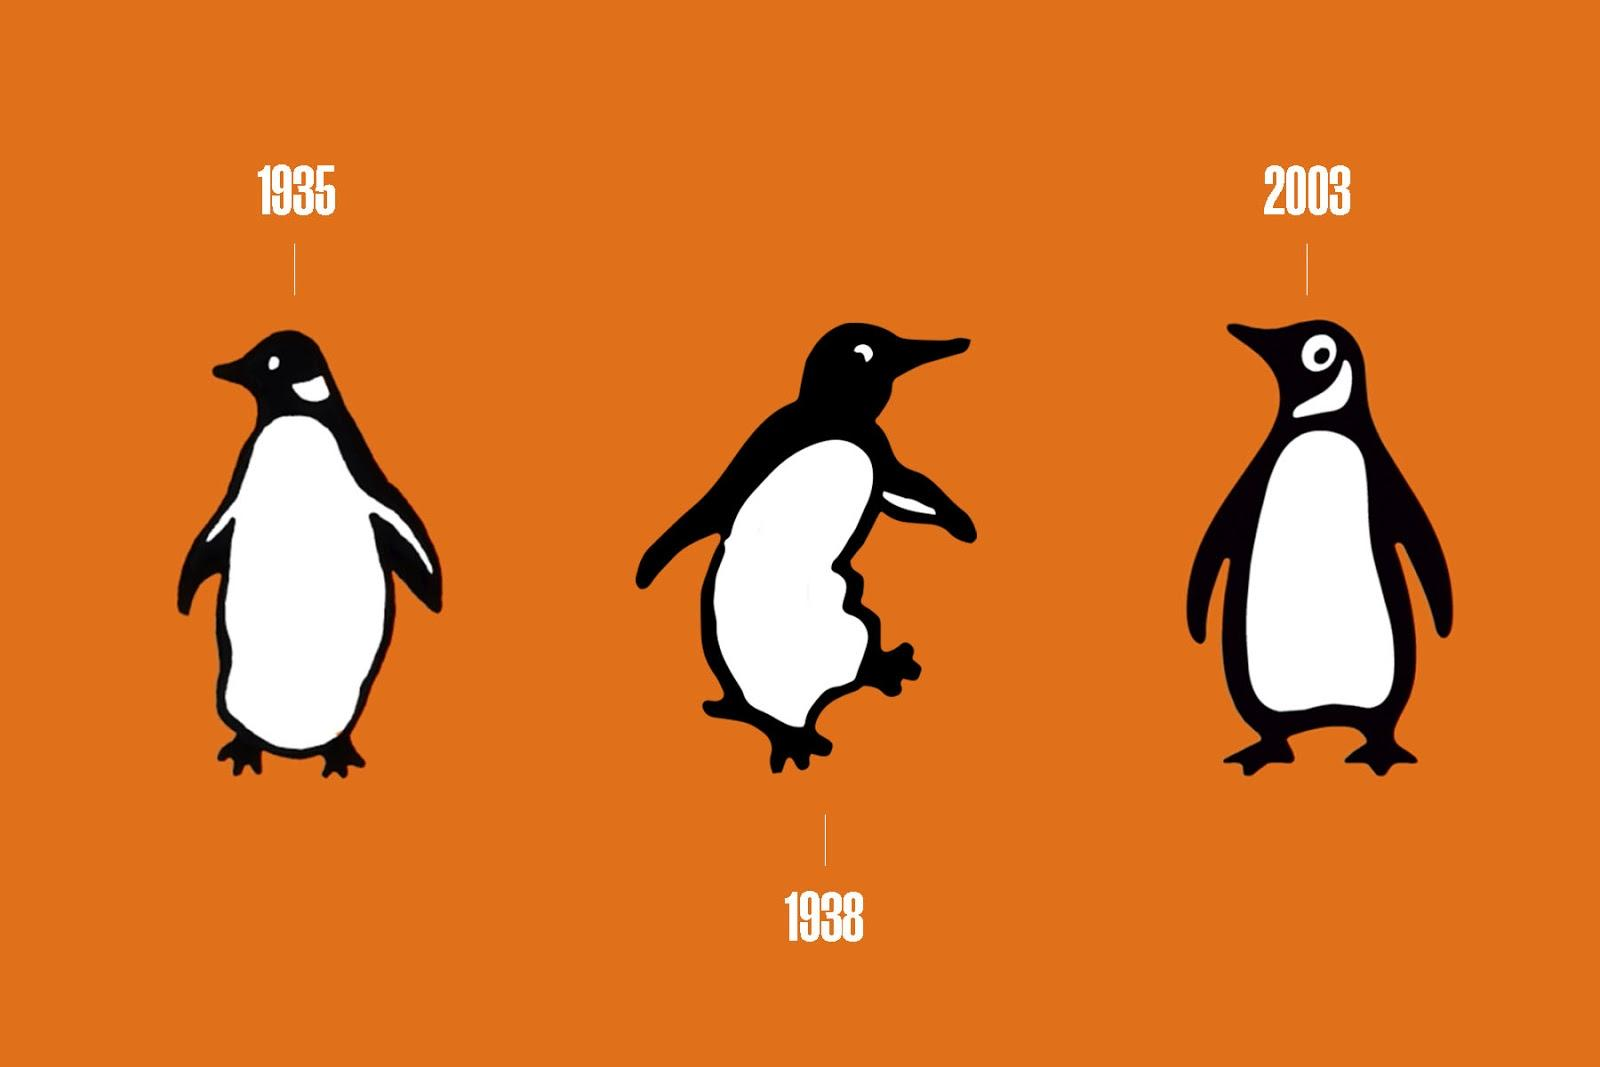 Three of the penguins from the Penguin Books logo, one from 1935, one from 1938 and one from 2003, on an orange background.